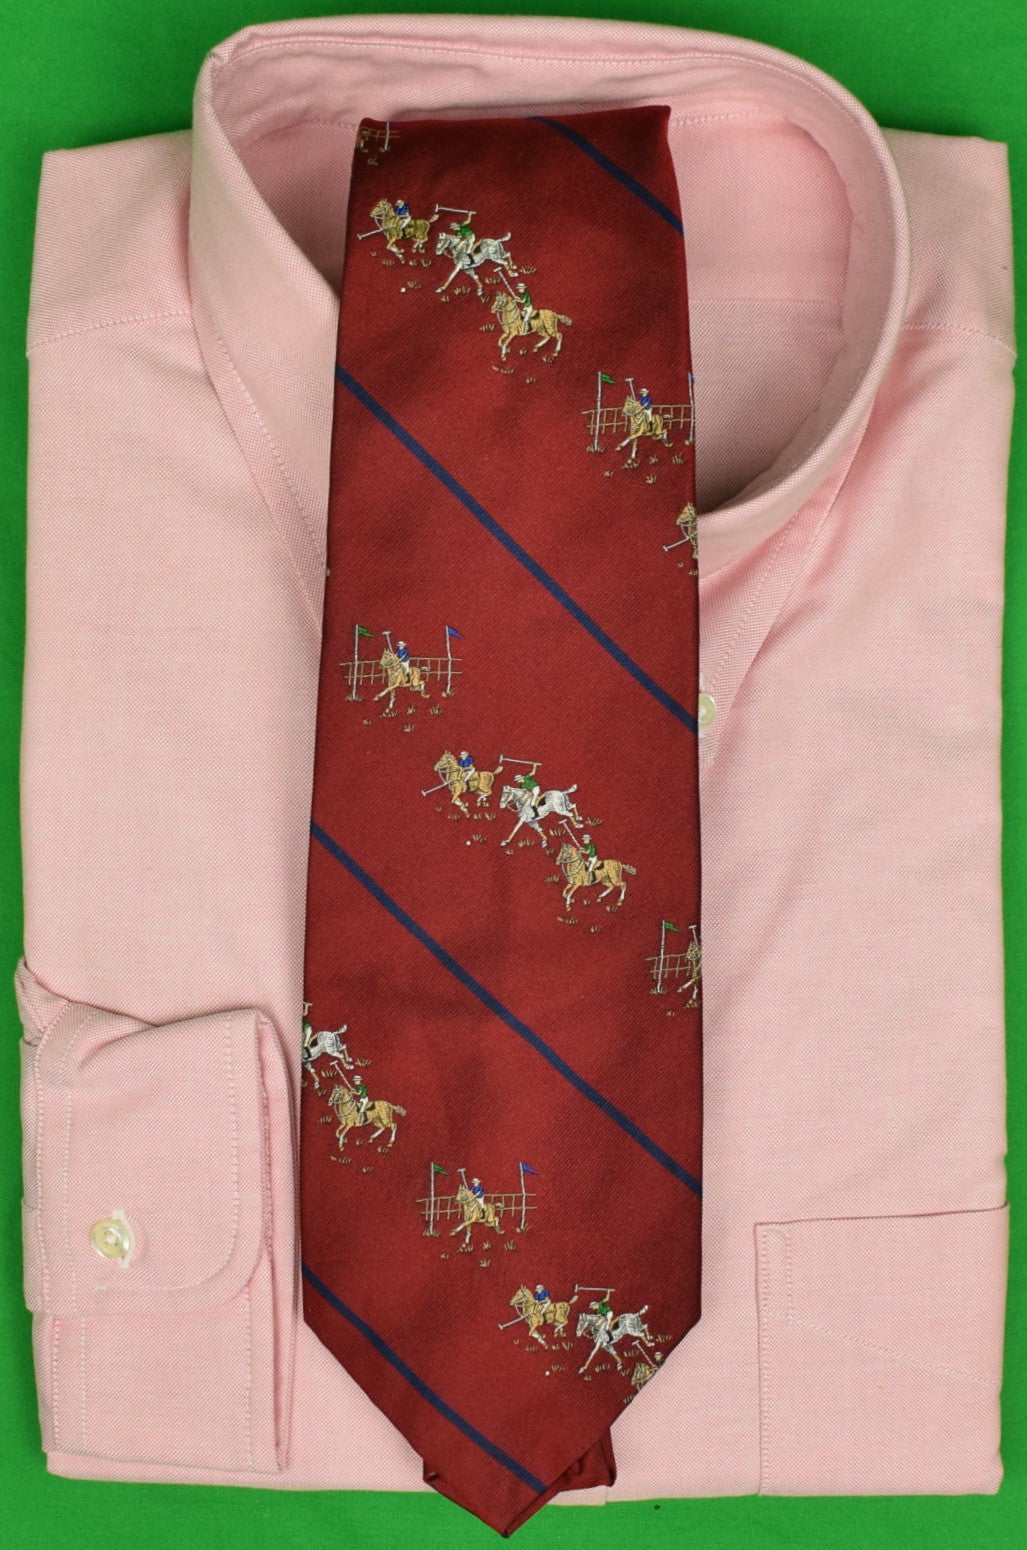 Polo by Ralph Lauren Burgundy w/ Navy Stripe Jacquard Silk Tie w/ Polo Match Motif